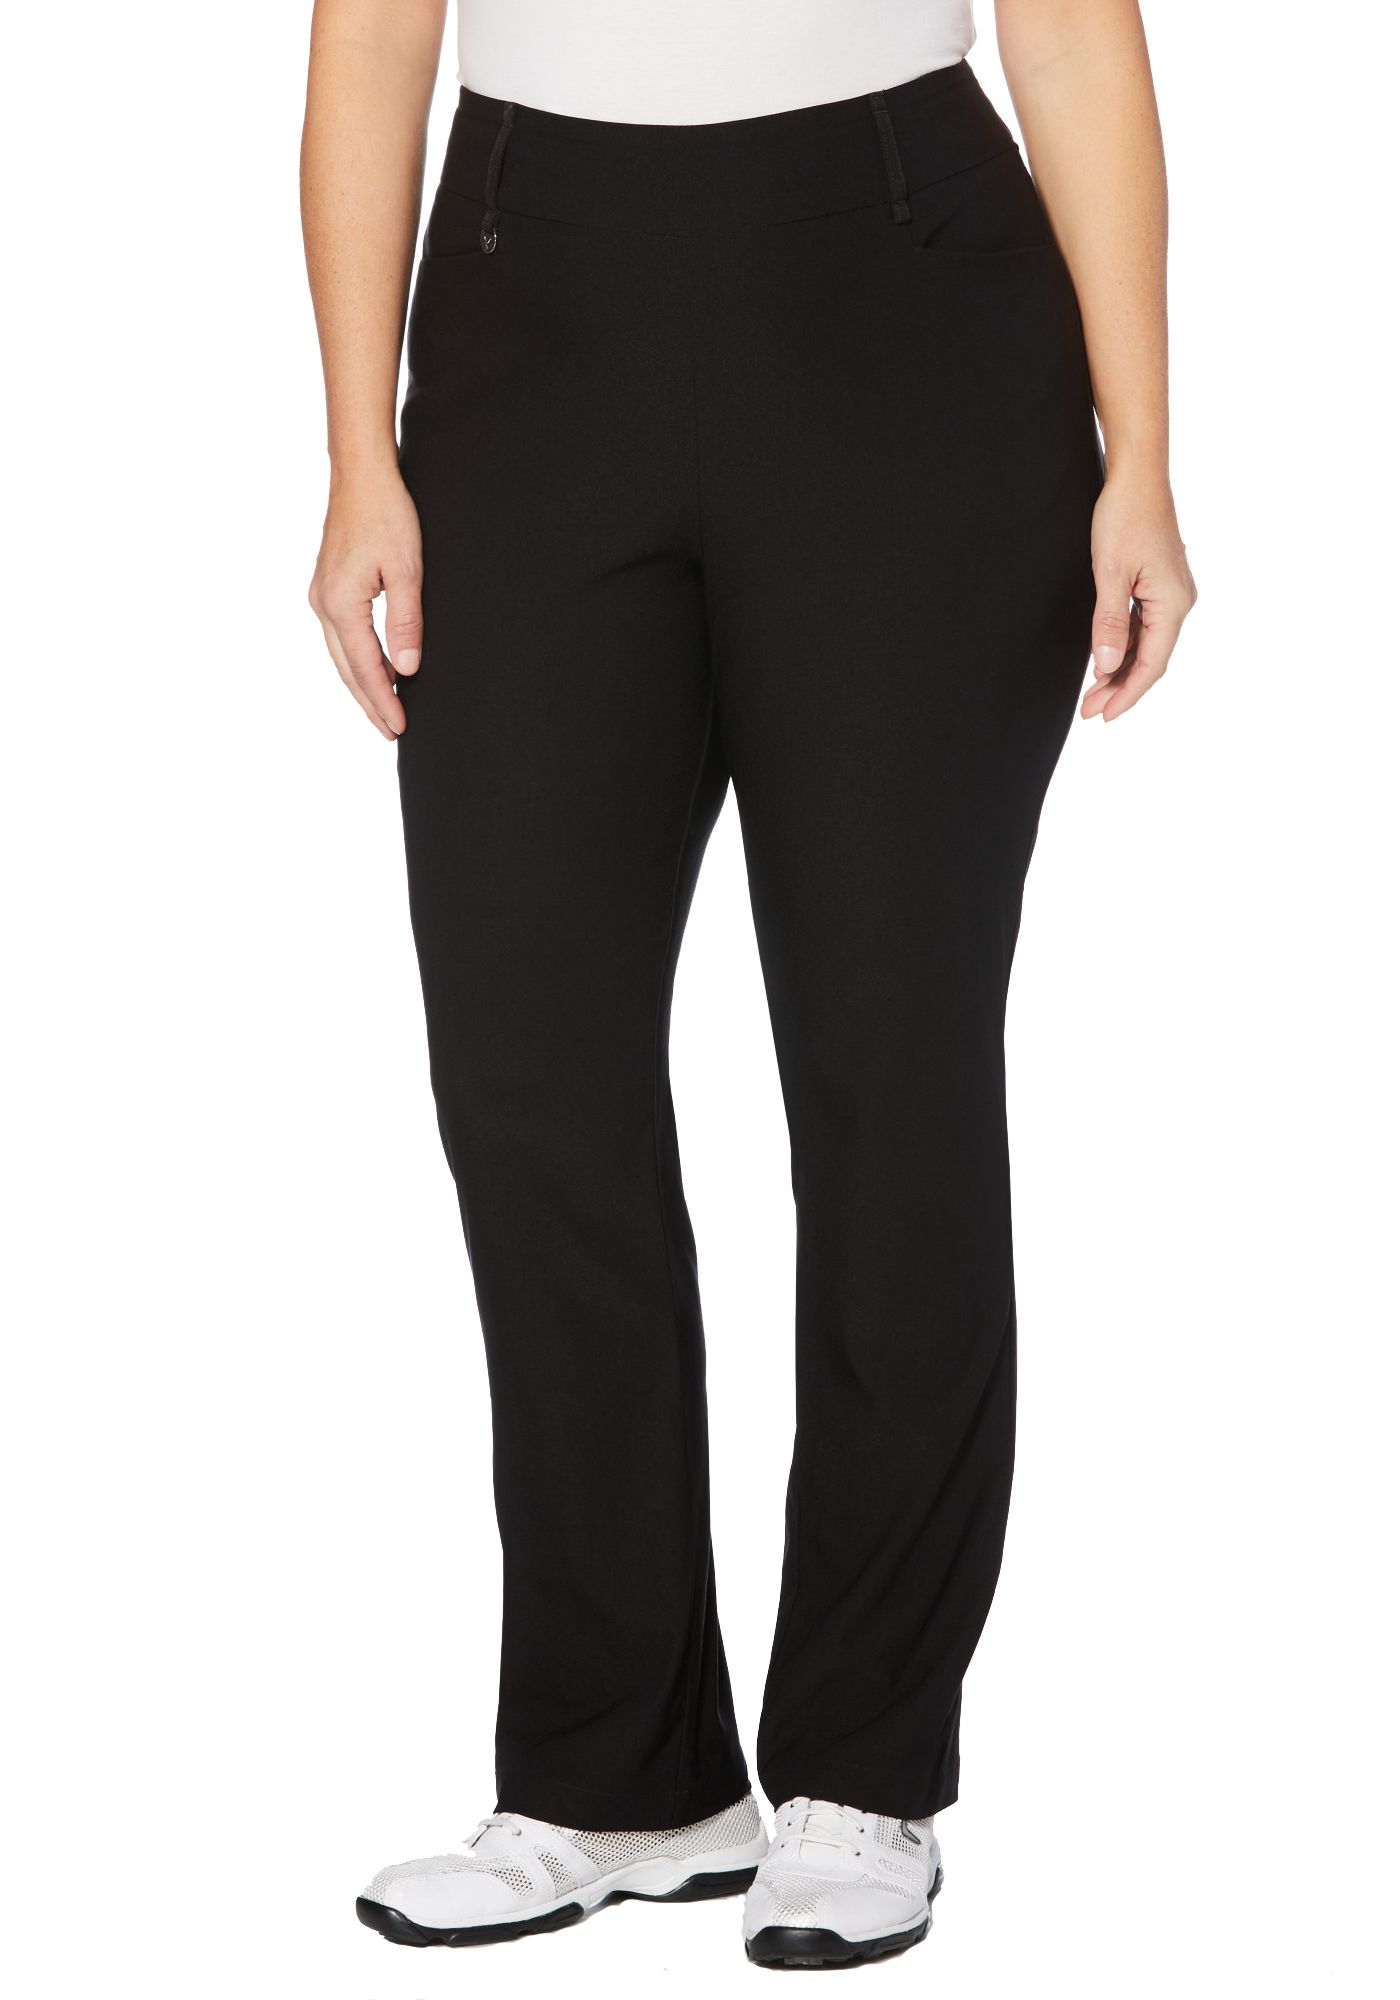 Callaway Women's Tech Stretch Solid Golf Pants - Extended Sizes